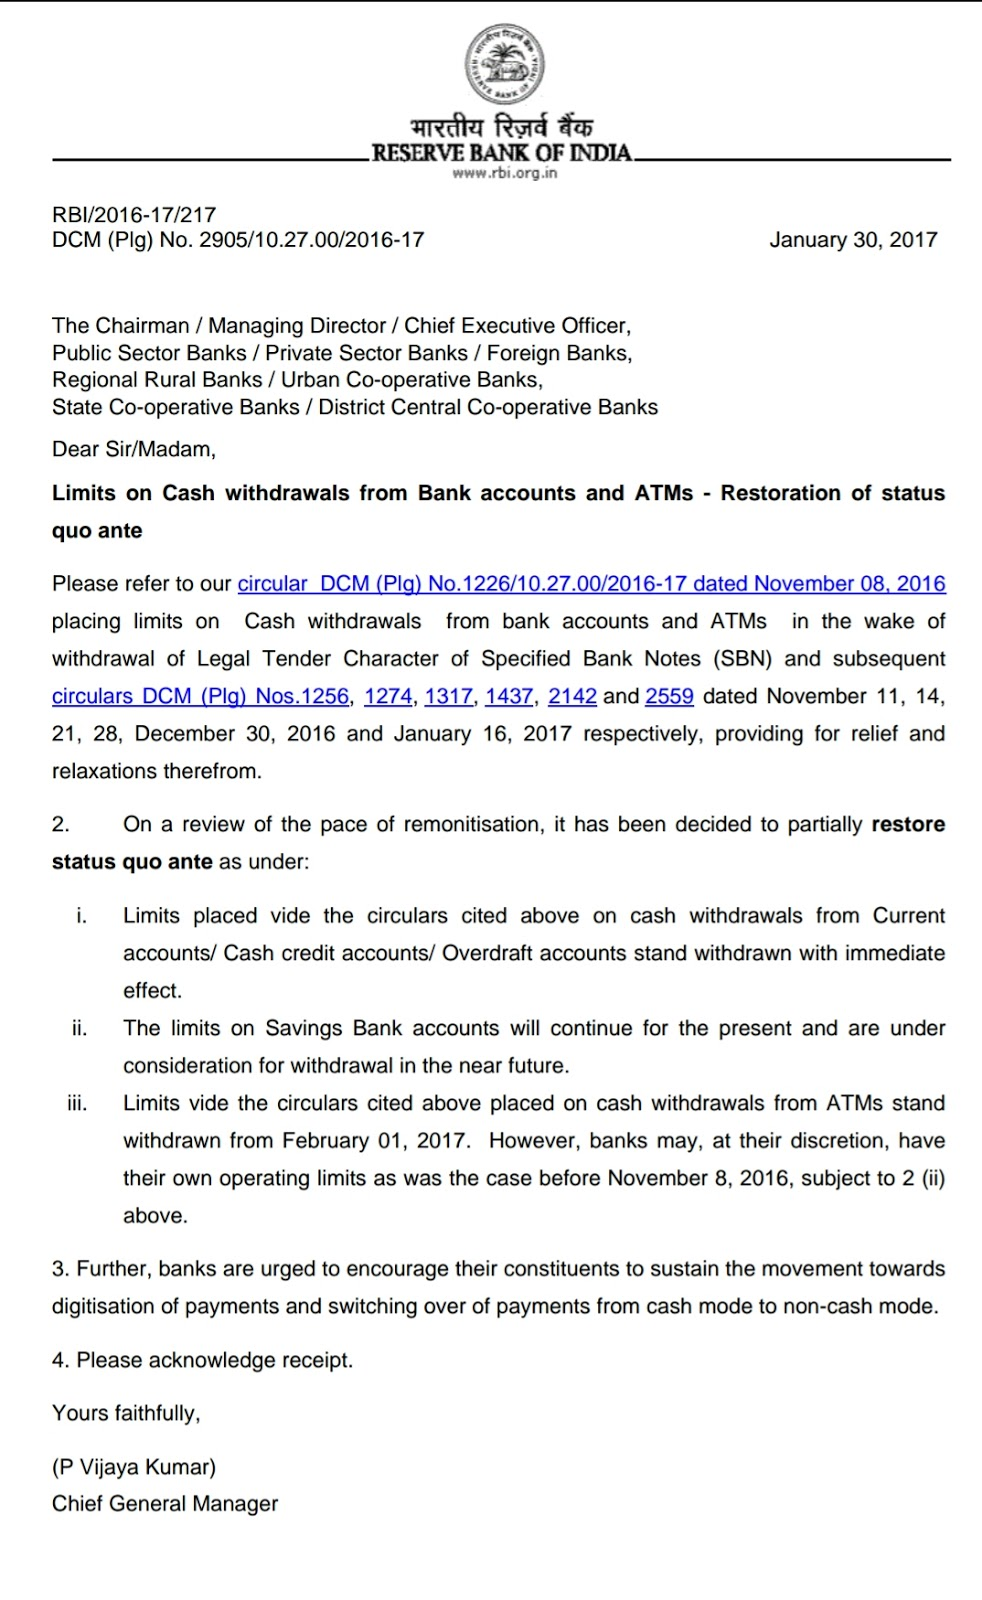 RBI has removed withdrawal limits for Current/ Cash credit/ Overdraft Accounts but not for Savings Accounts from 30th January 2017